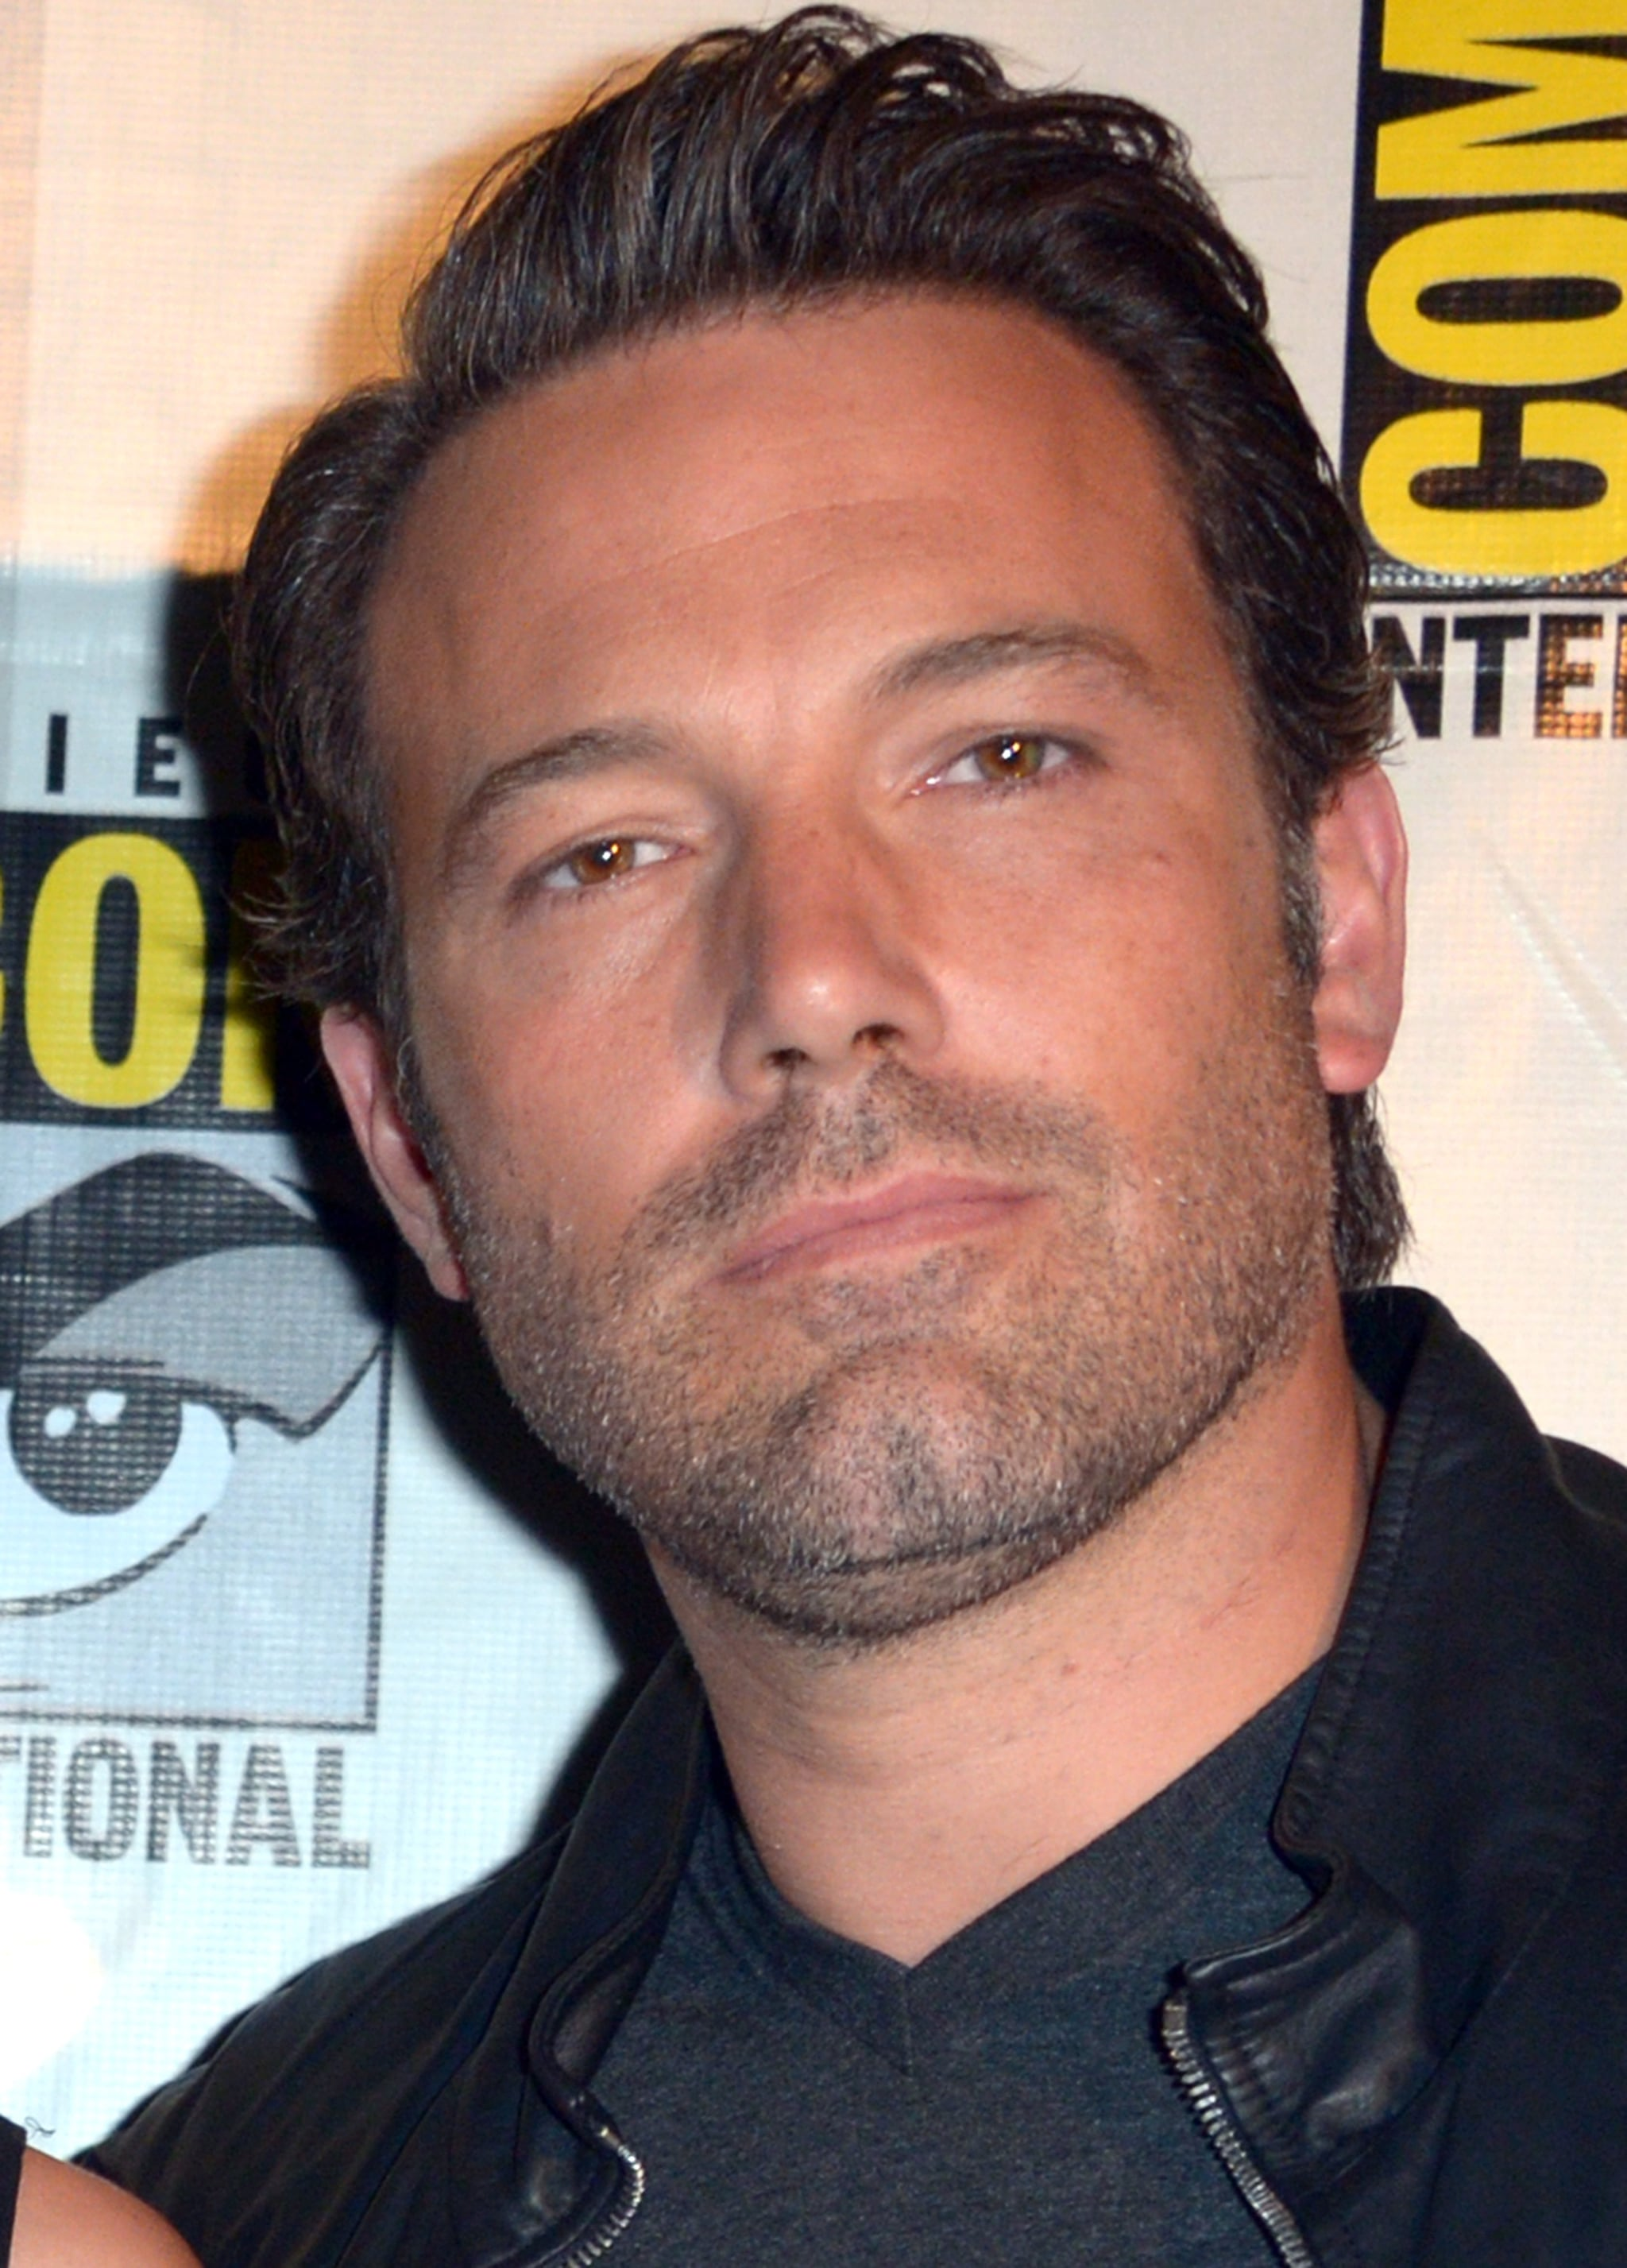 Surprise! Ben Affleck Makes a Dashing Appearance at Comic-Con